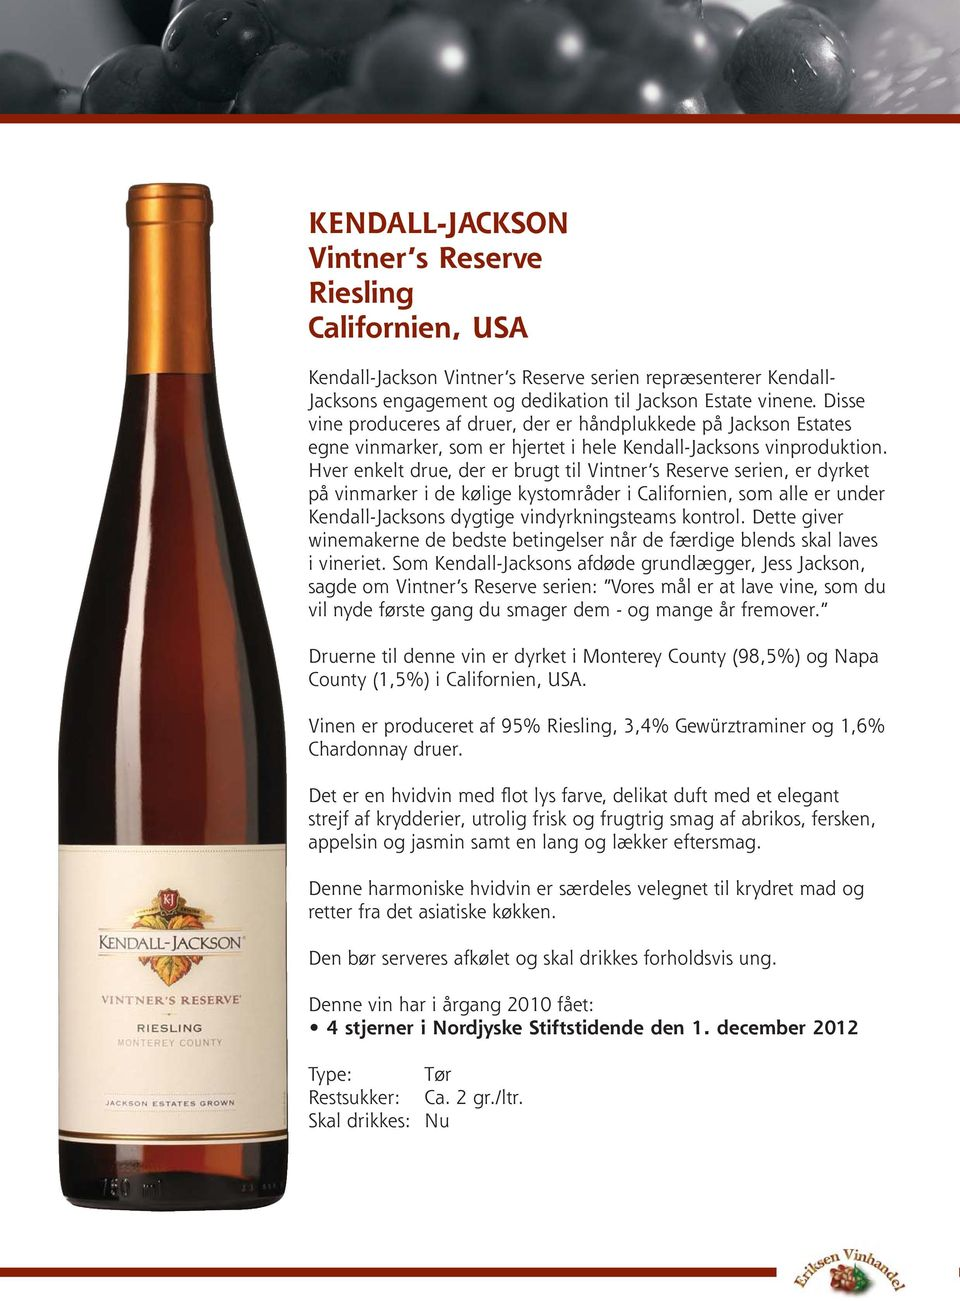 Hver enkelt drue, der er brugt til Vintner s Reserve serien, er dyrket på vinmarker i de kølige kystområder i Californien, som alle er under Kendall-Jacksons dygtige vindyrkningsteams kontrol.